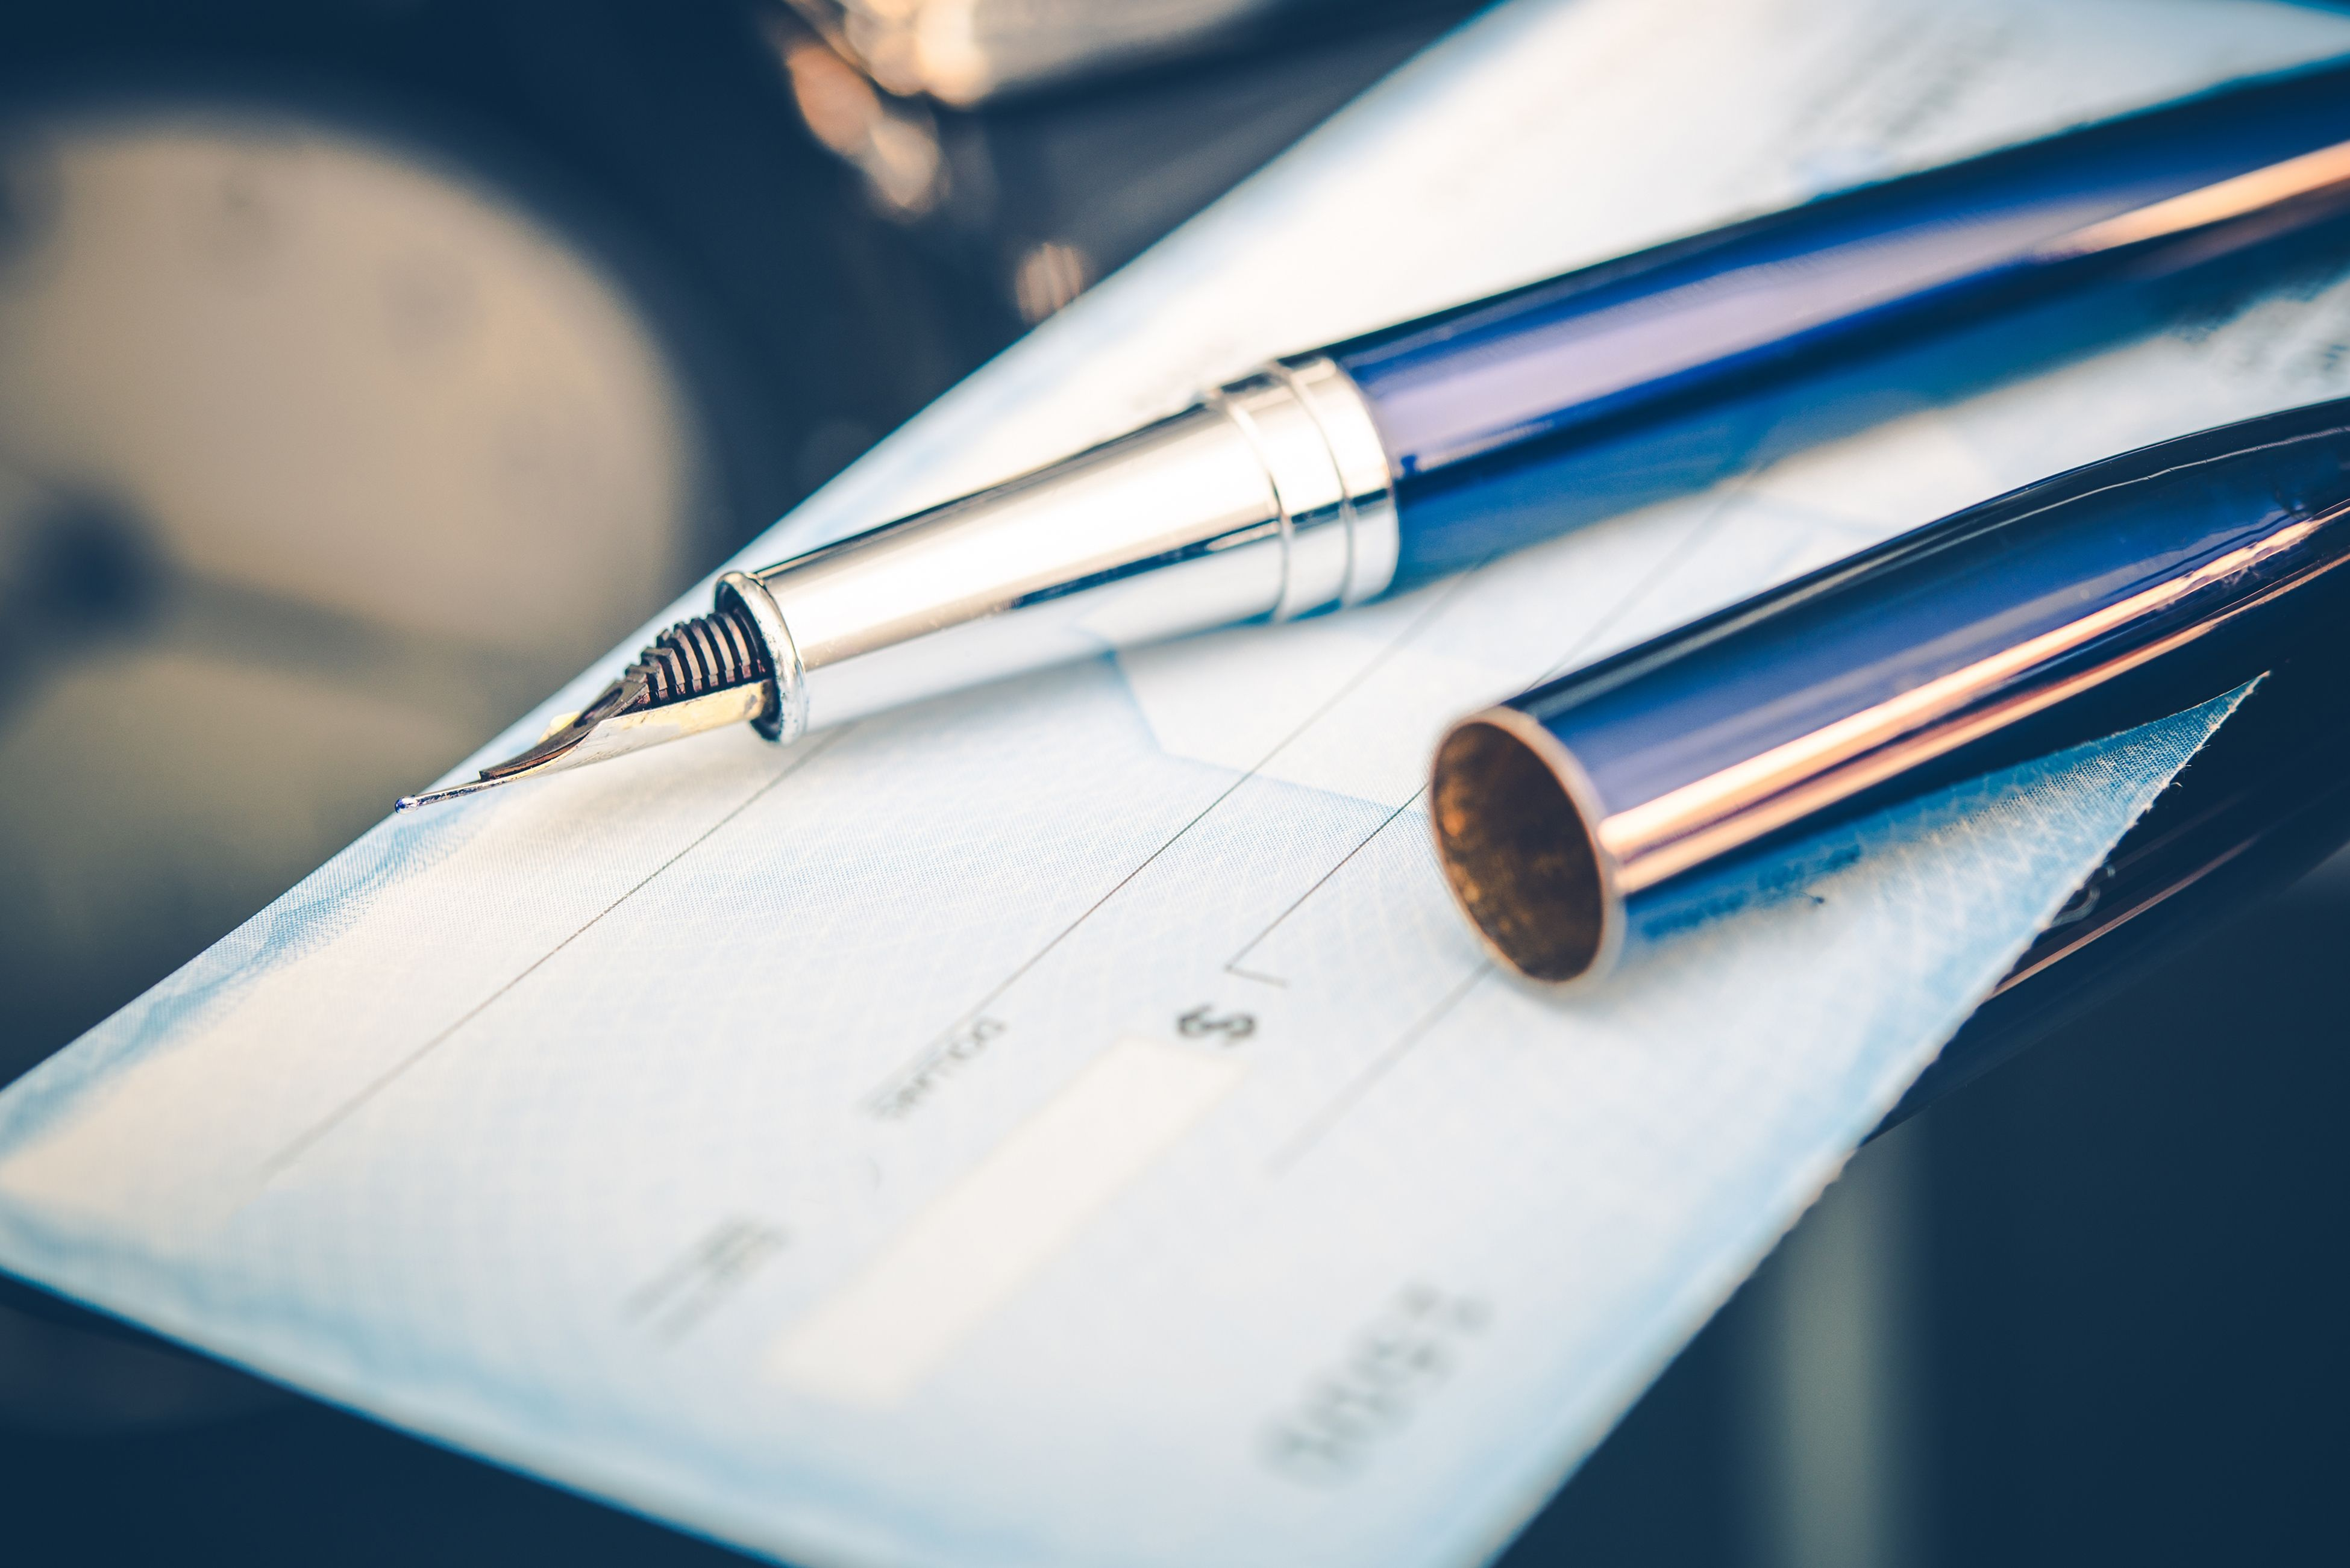 Issuing payment by check by using a fountain pen